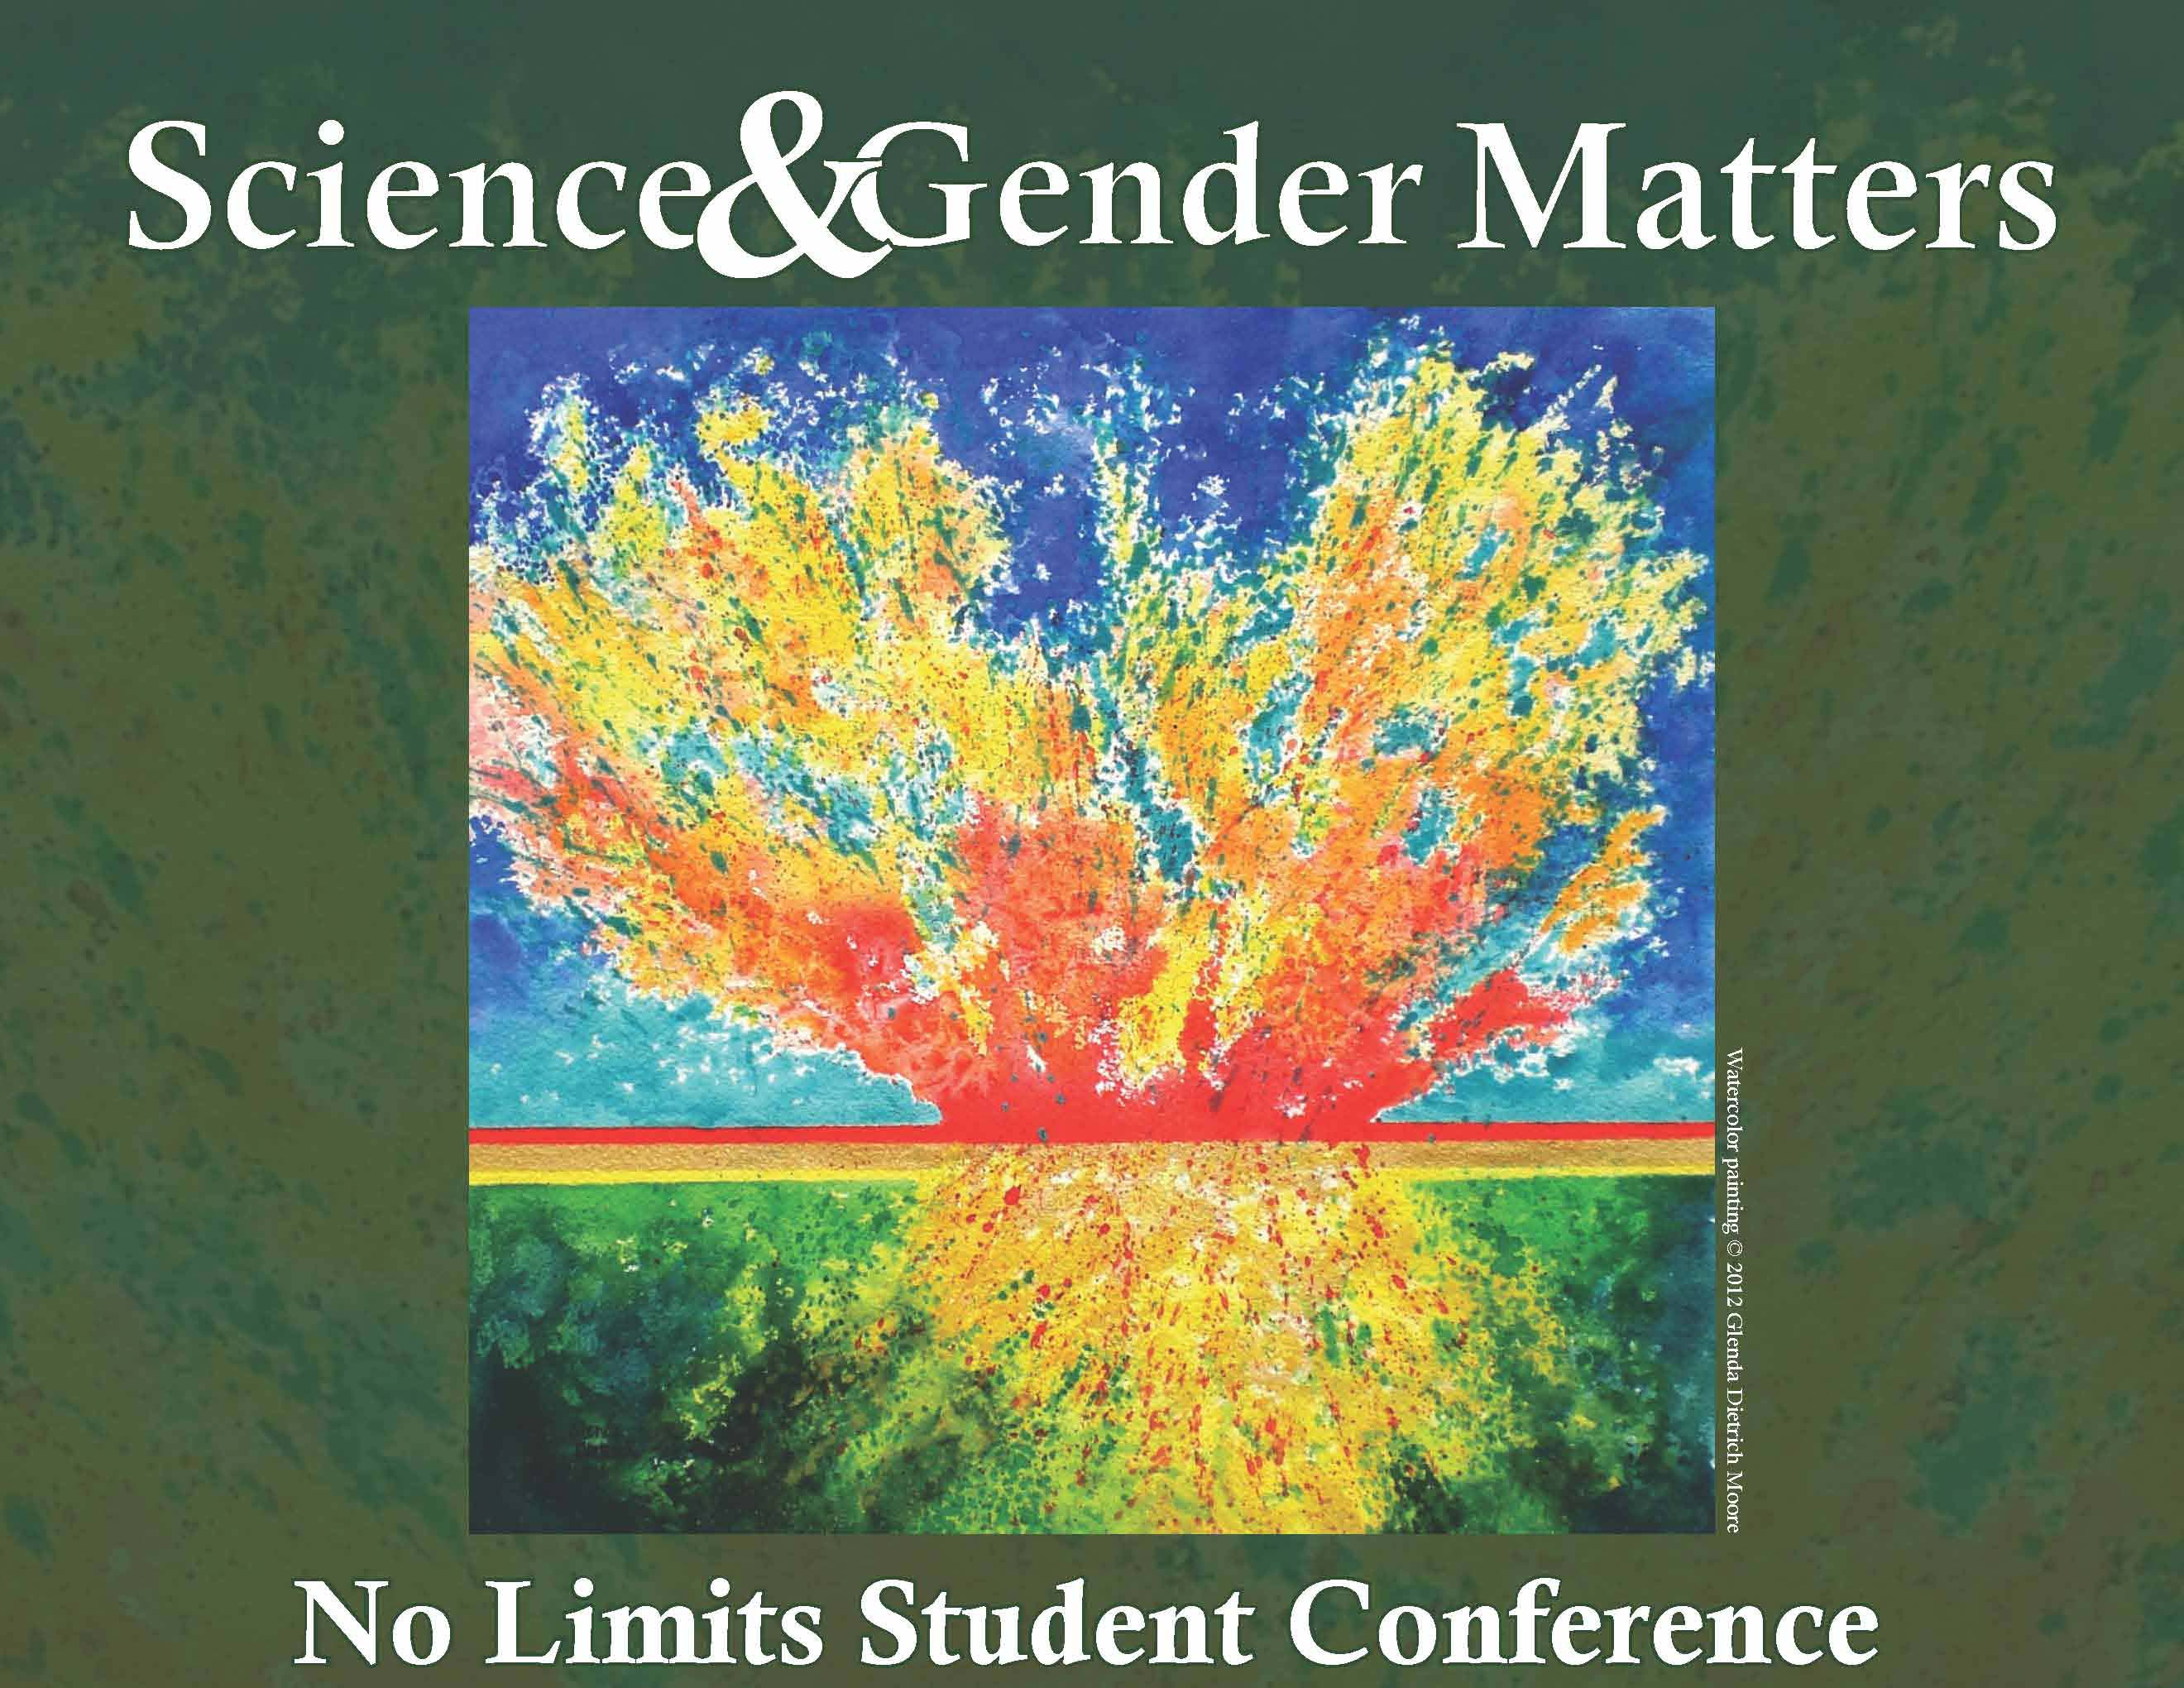 Science and Gender Matters, No Limits studnet Confernce